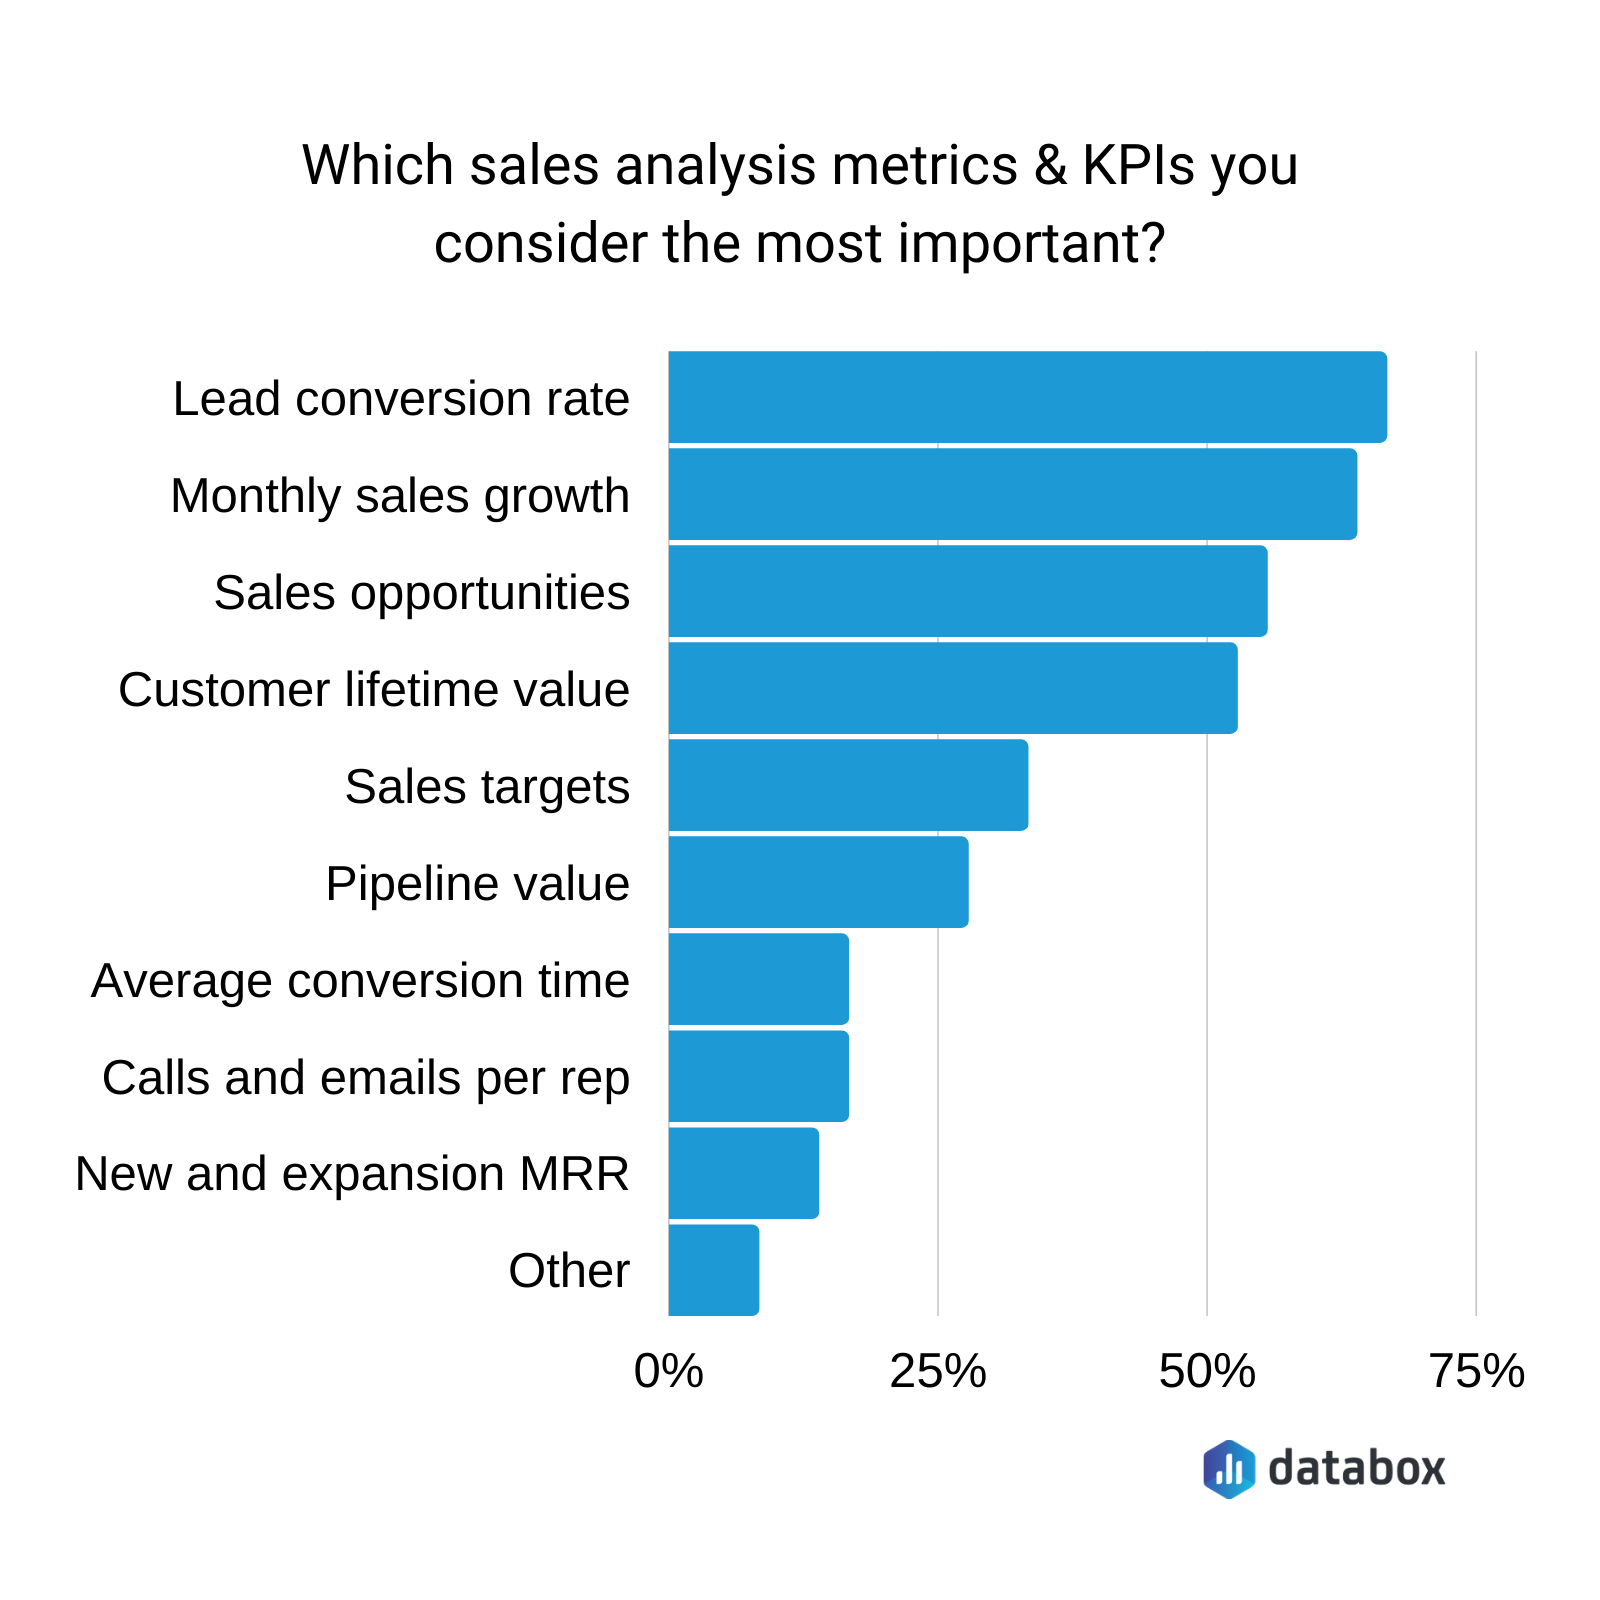 most important sales analysis metrics and KPIs according to 20 sales experts